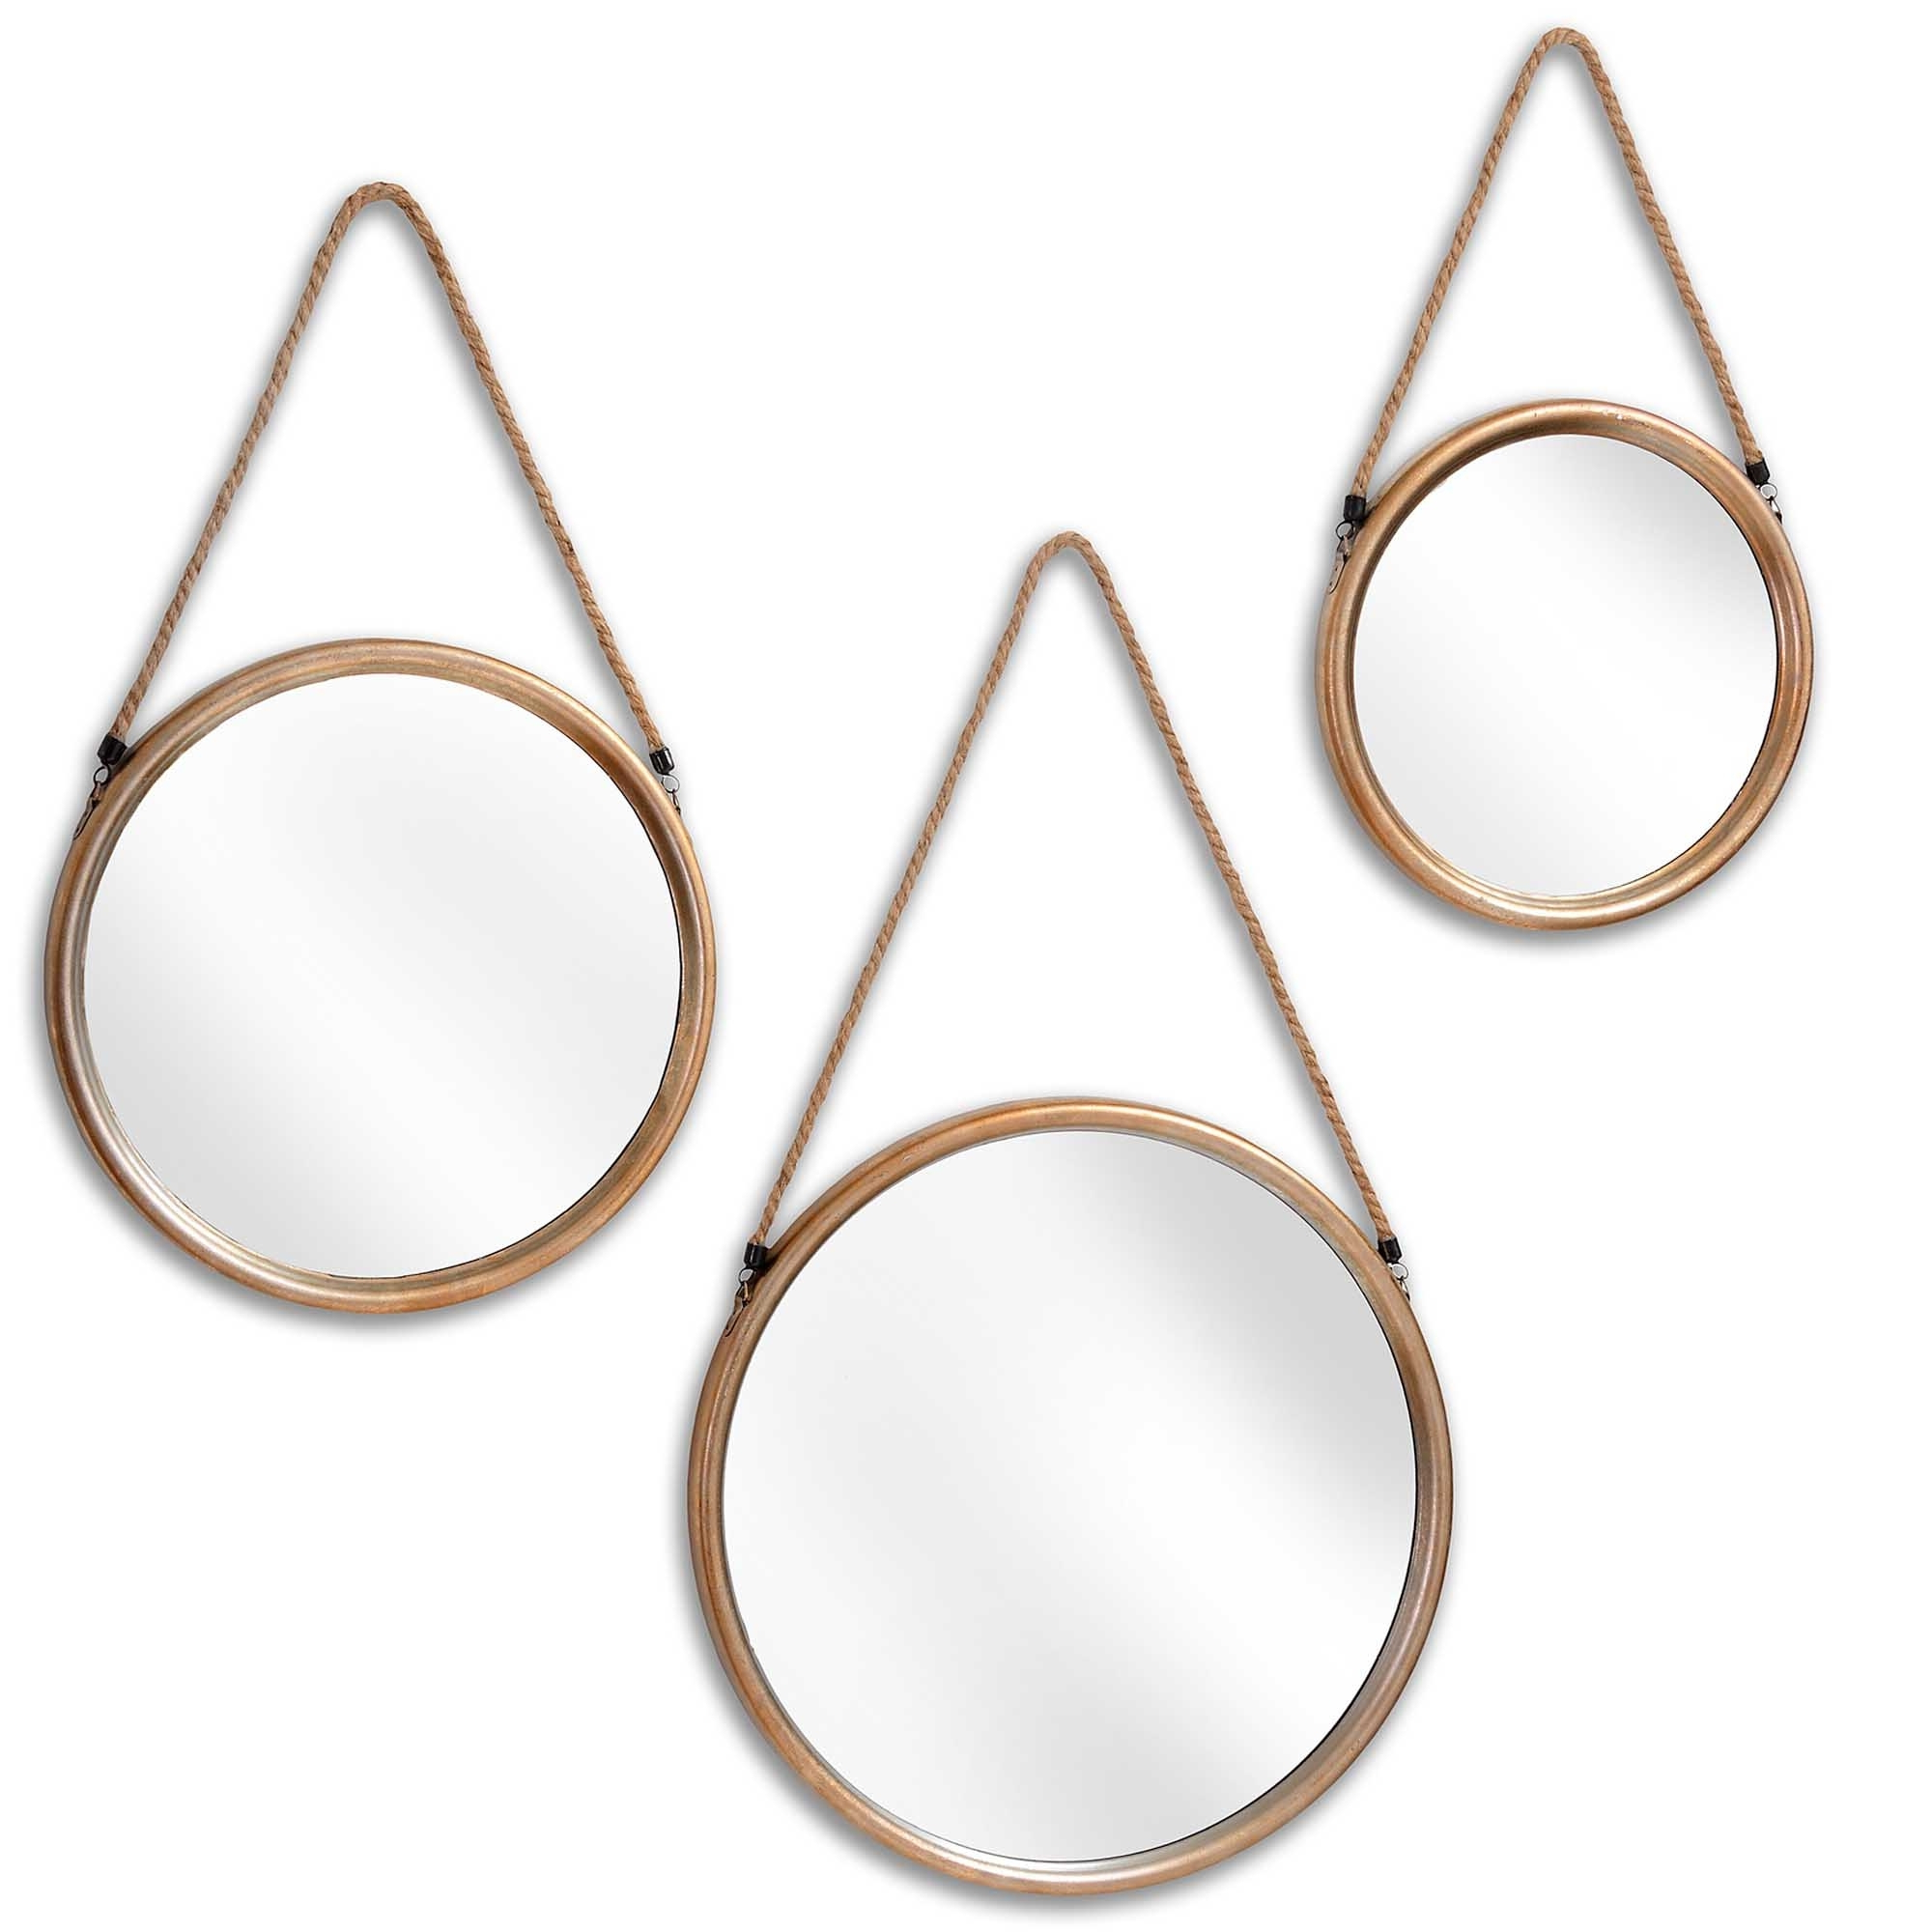 Set Of 3 Hanging Round Gold Wall Mirrors For Well Known Set Of 3 Wall Mirrors (View 10 of 20)